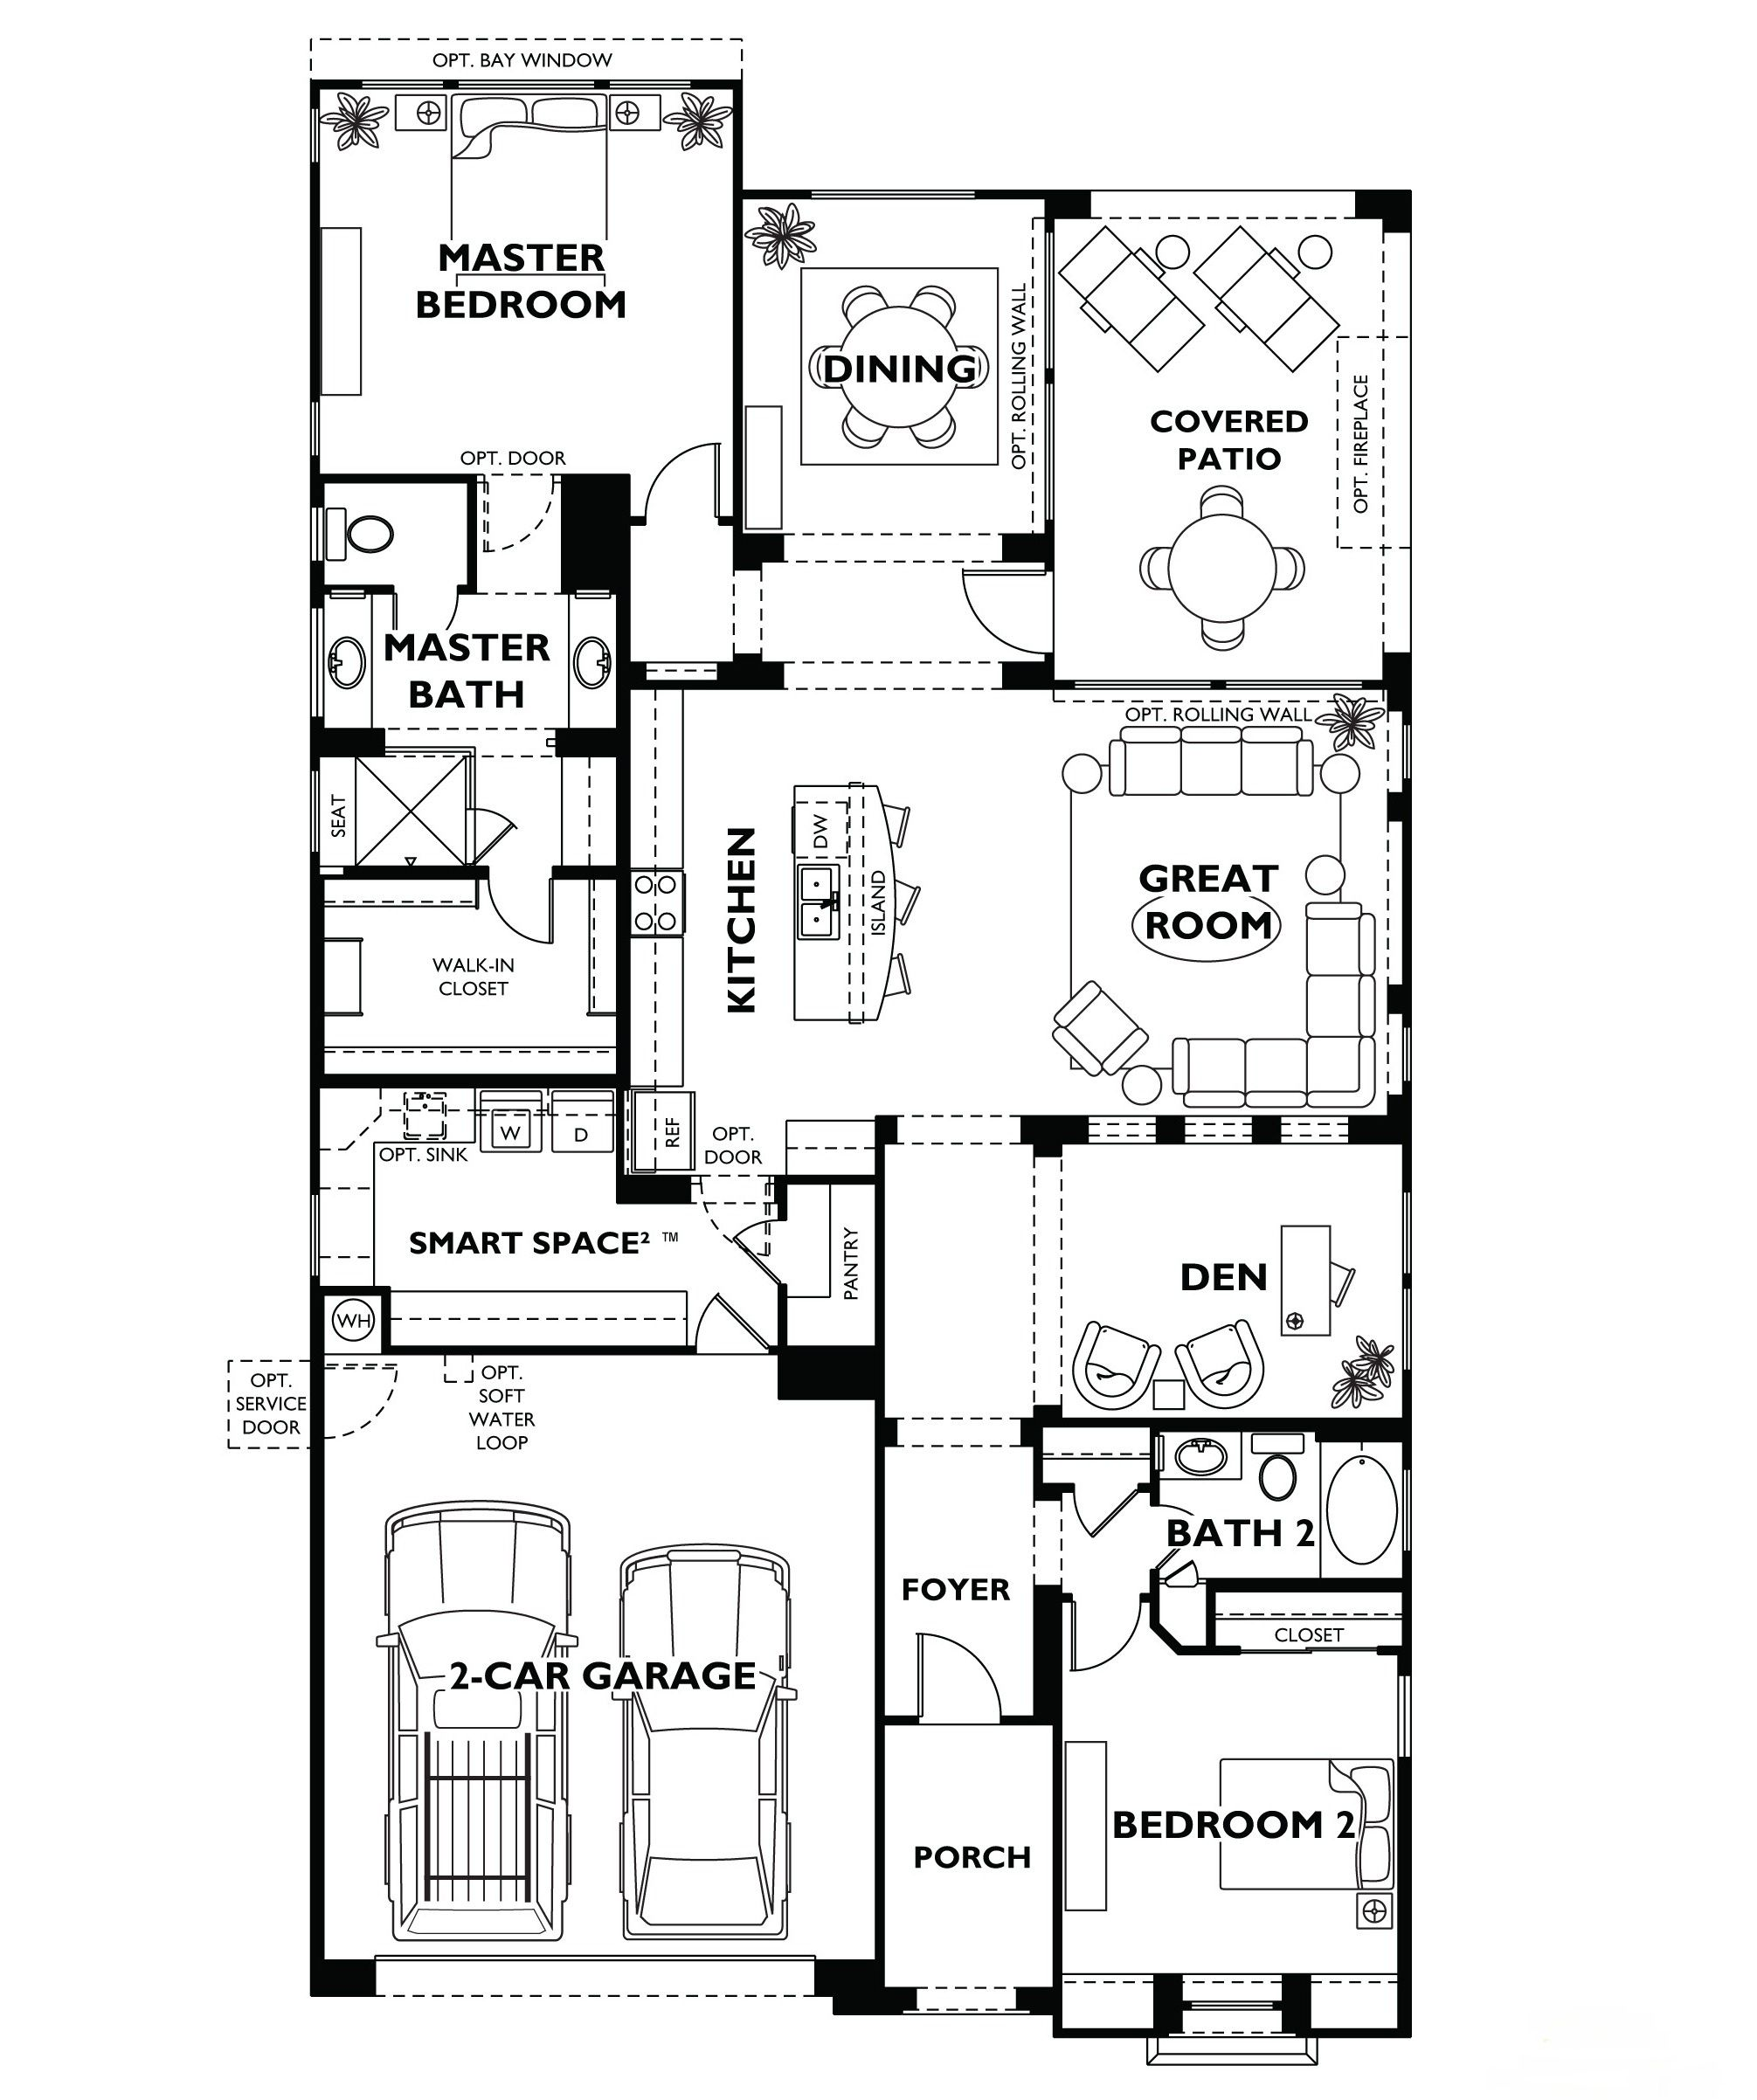 Nice House Plans Find The Best Images Of Modern House Decor And Architecture At Https Zionstar Net Floor Plans Model House Plan New Model House